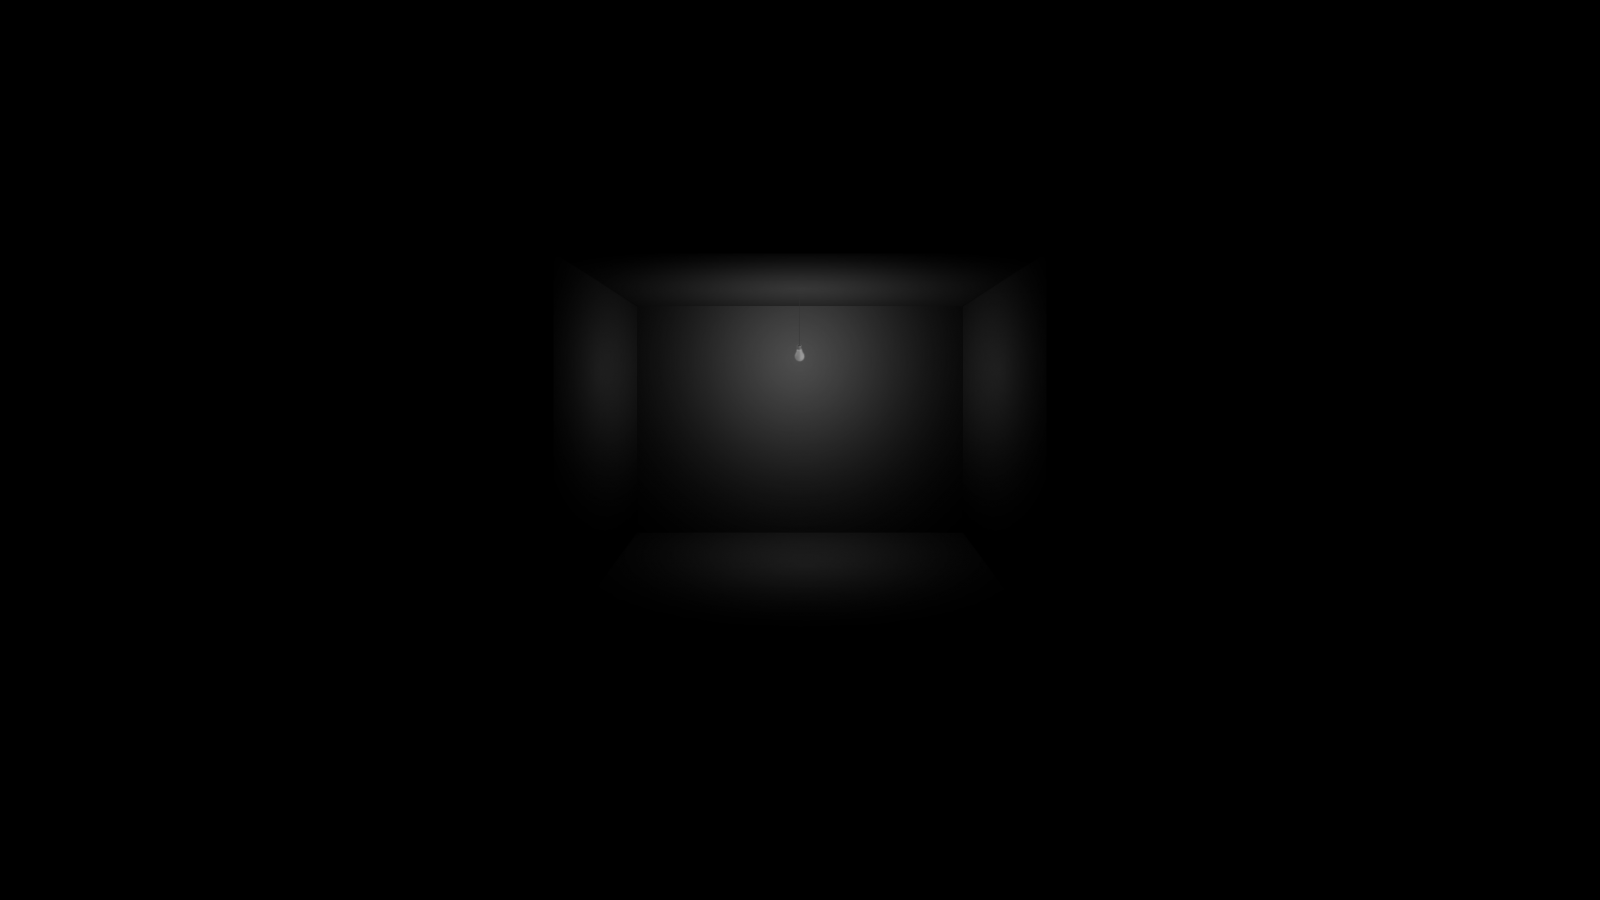 Free download Dark Room Wallpaper 1856x1392 Dark Room By Maximumbob